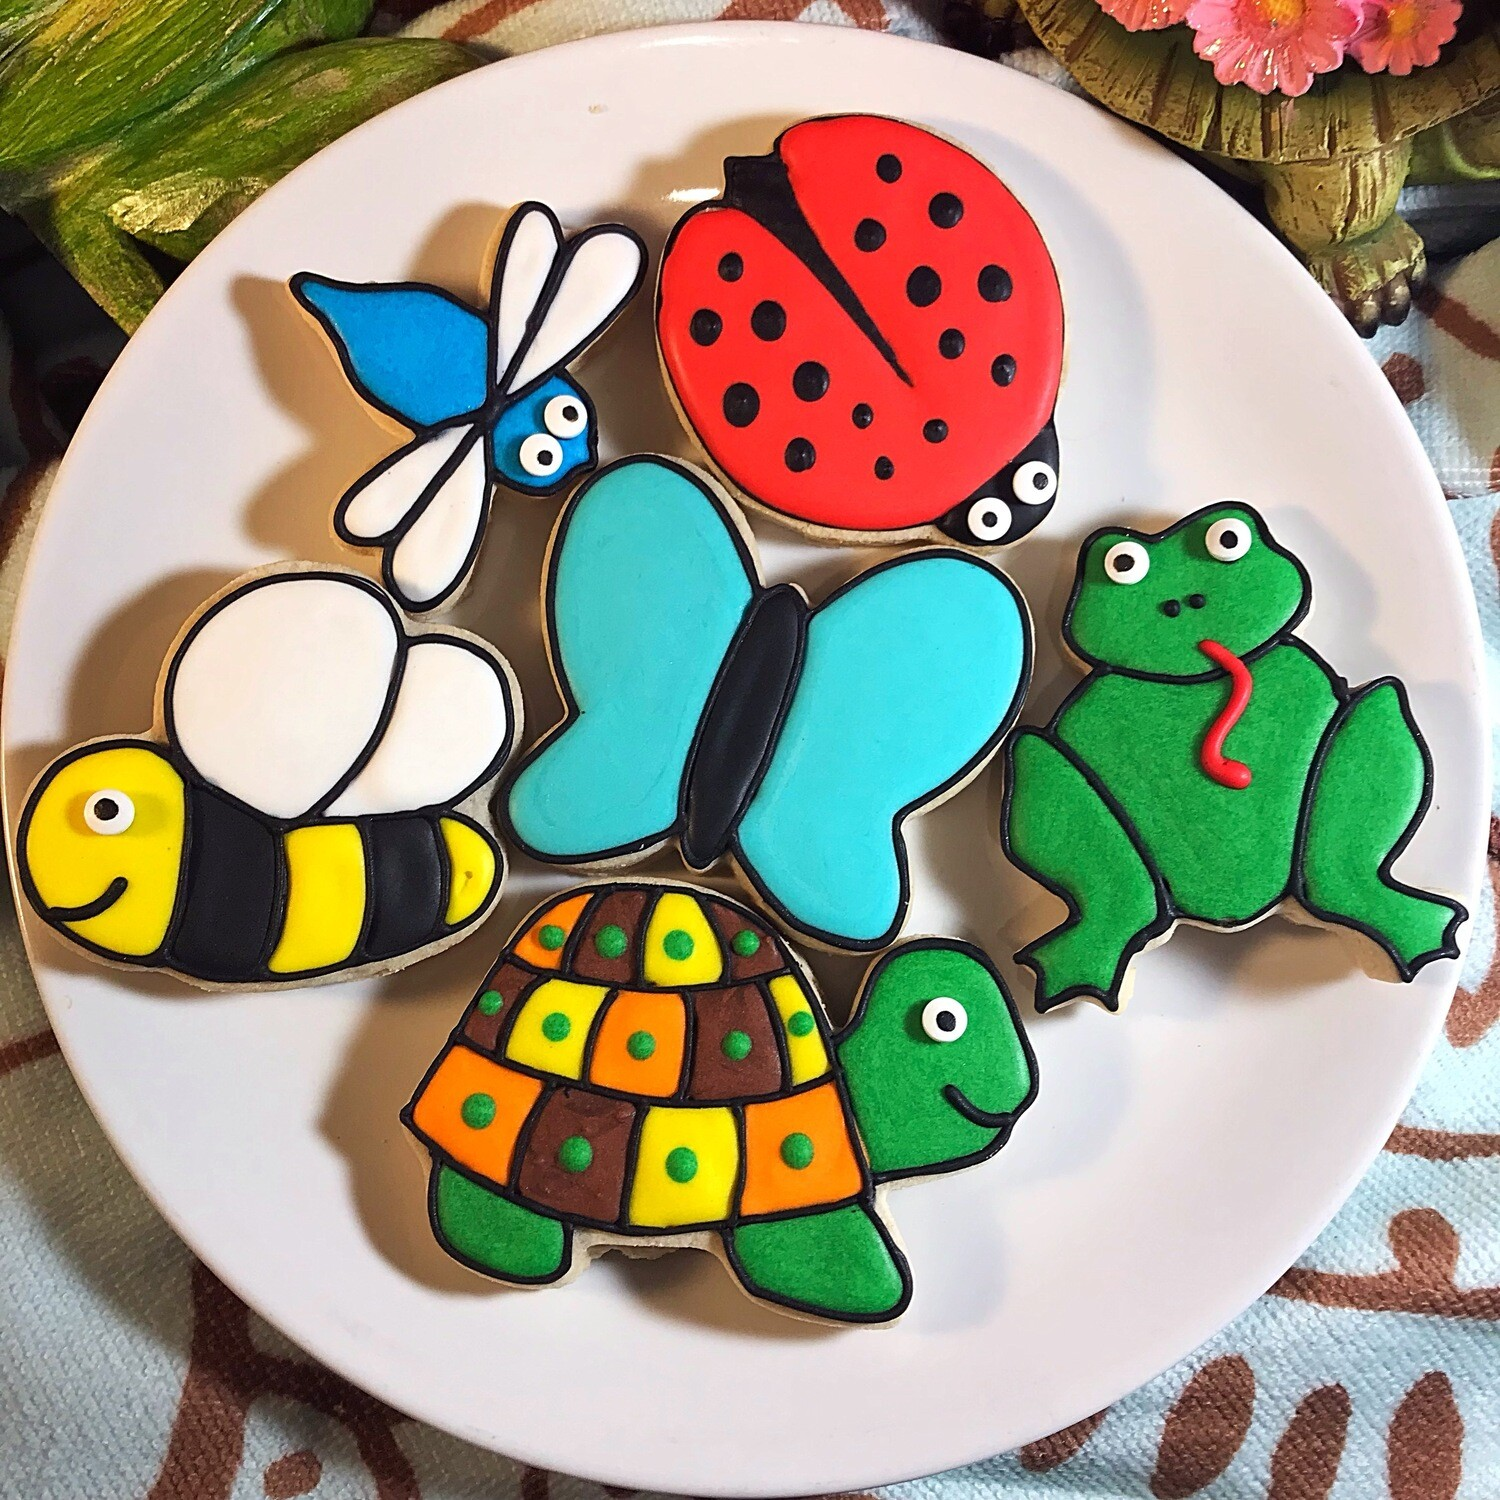 CUTE CRITTERS Decorating Workshop - FRIDAY, AUG 2, 2019 at 6:30 p.m. (GOOD JUJU) BYOB